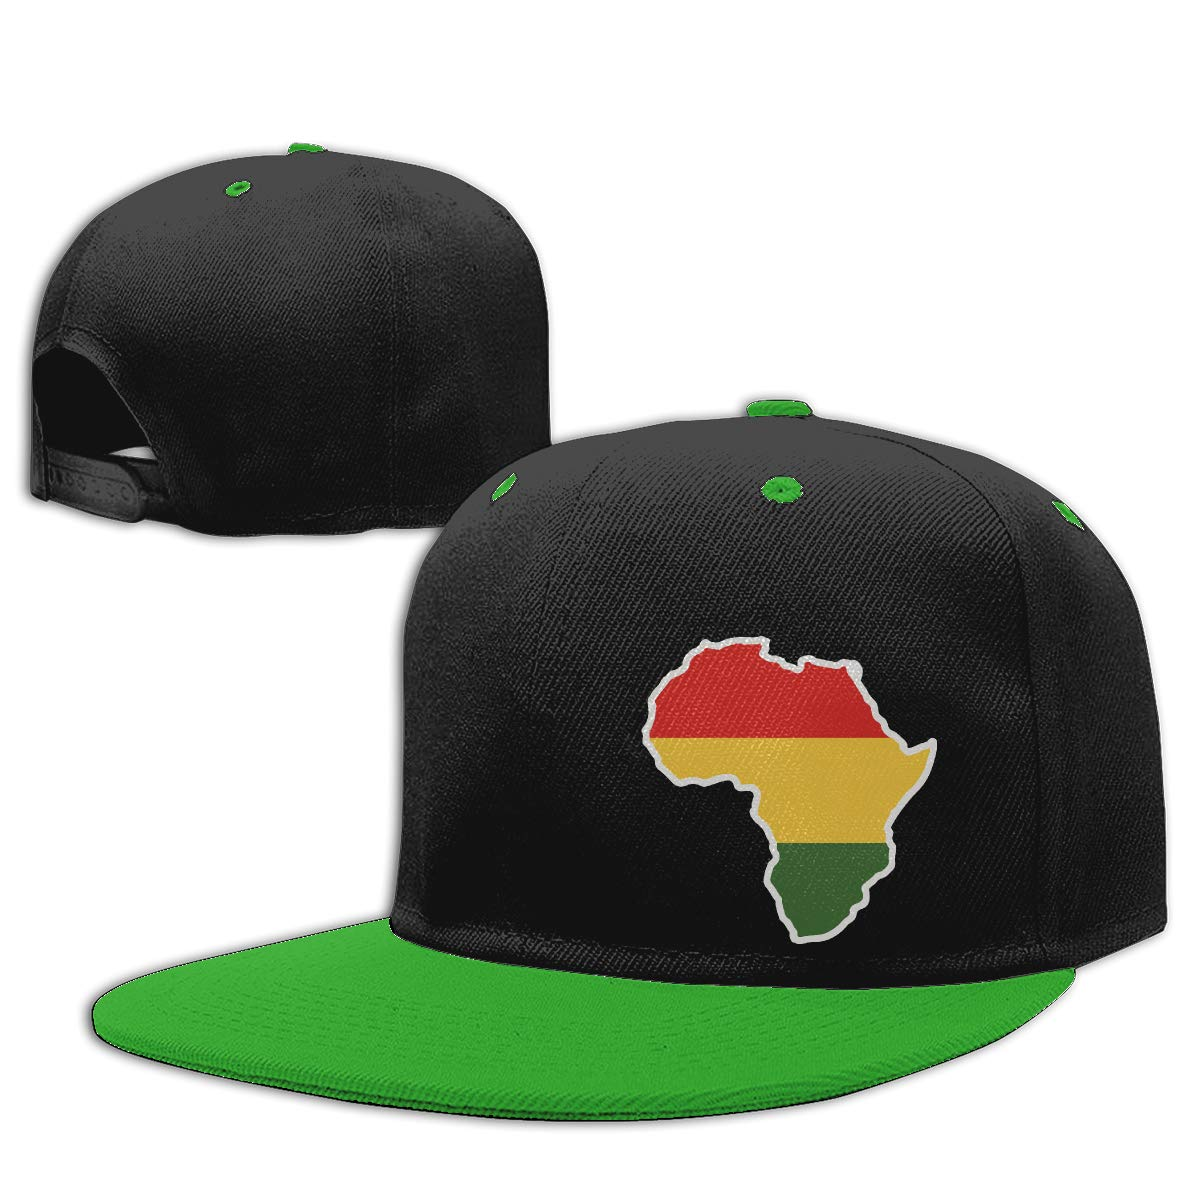 NMG-01 Men and Women Hiphop Cap Africa Flag Adjustable Flat Peaked Baseball Caps